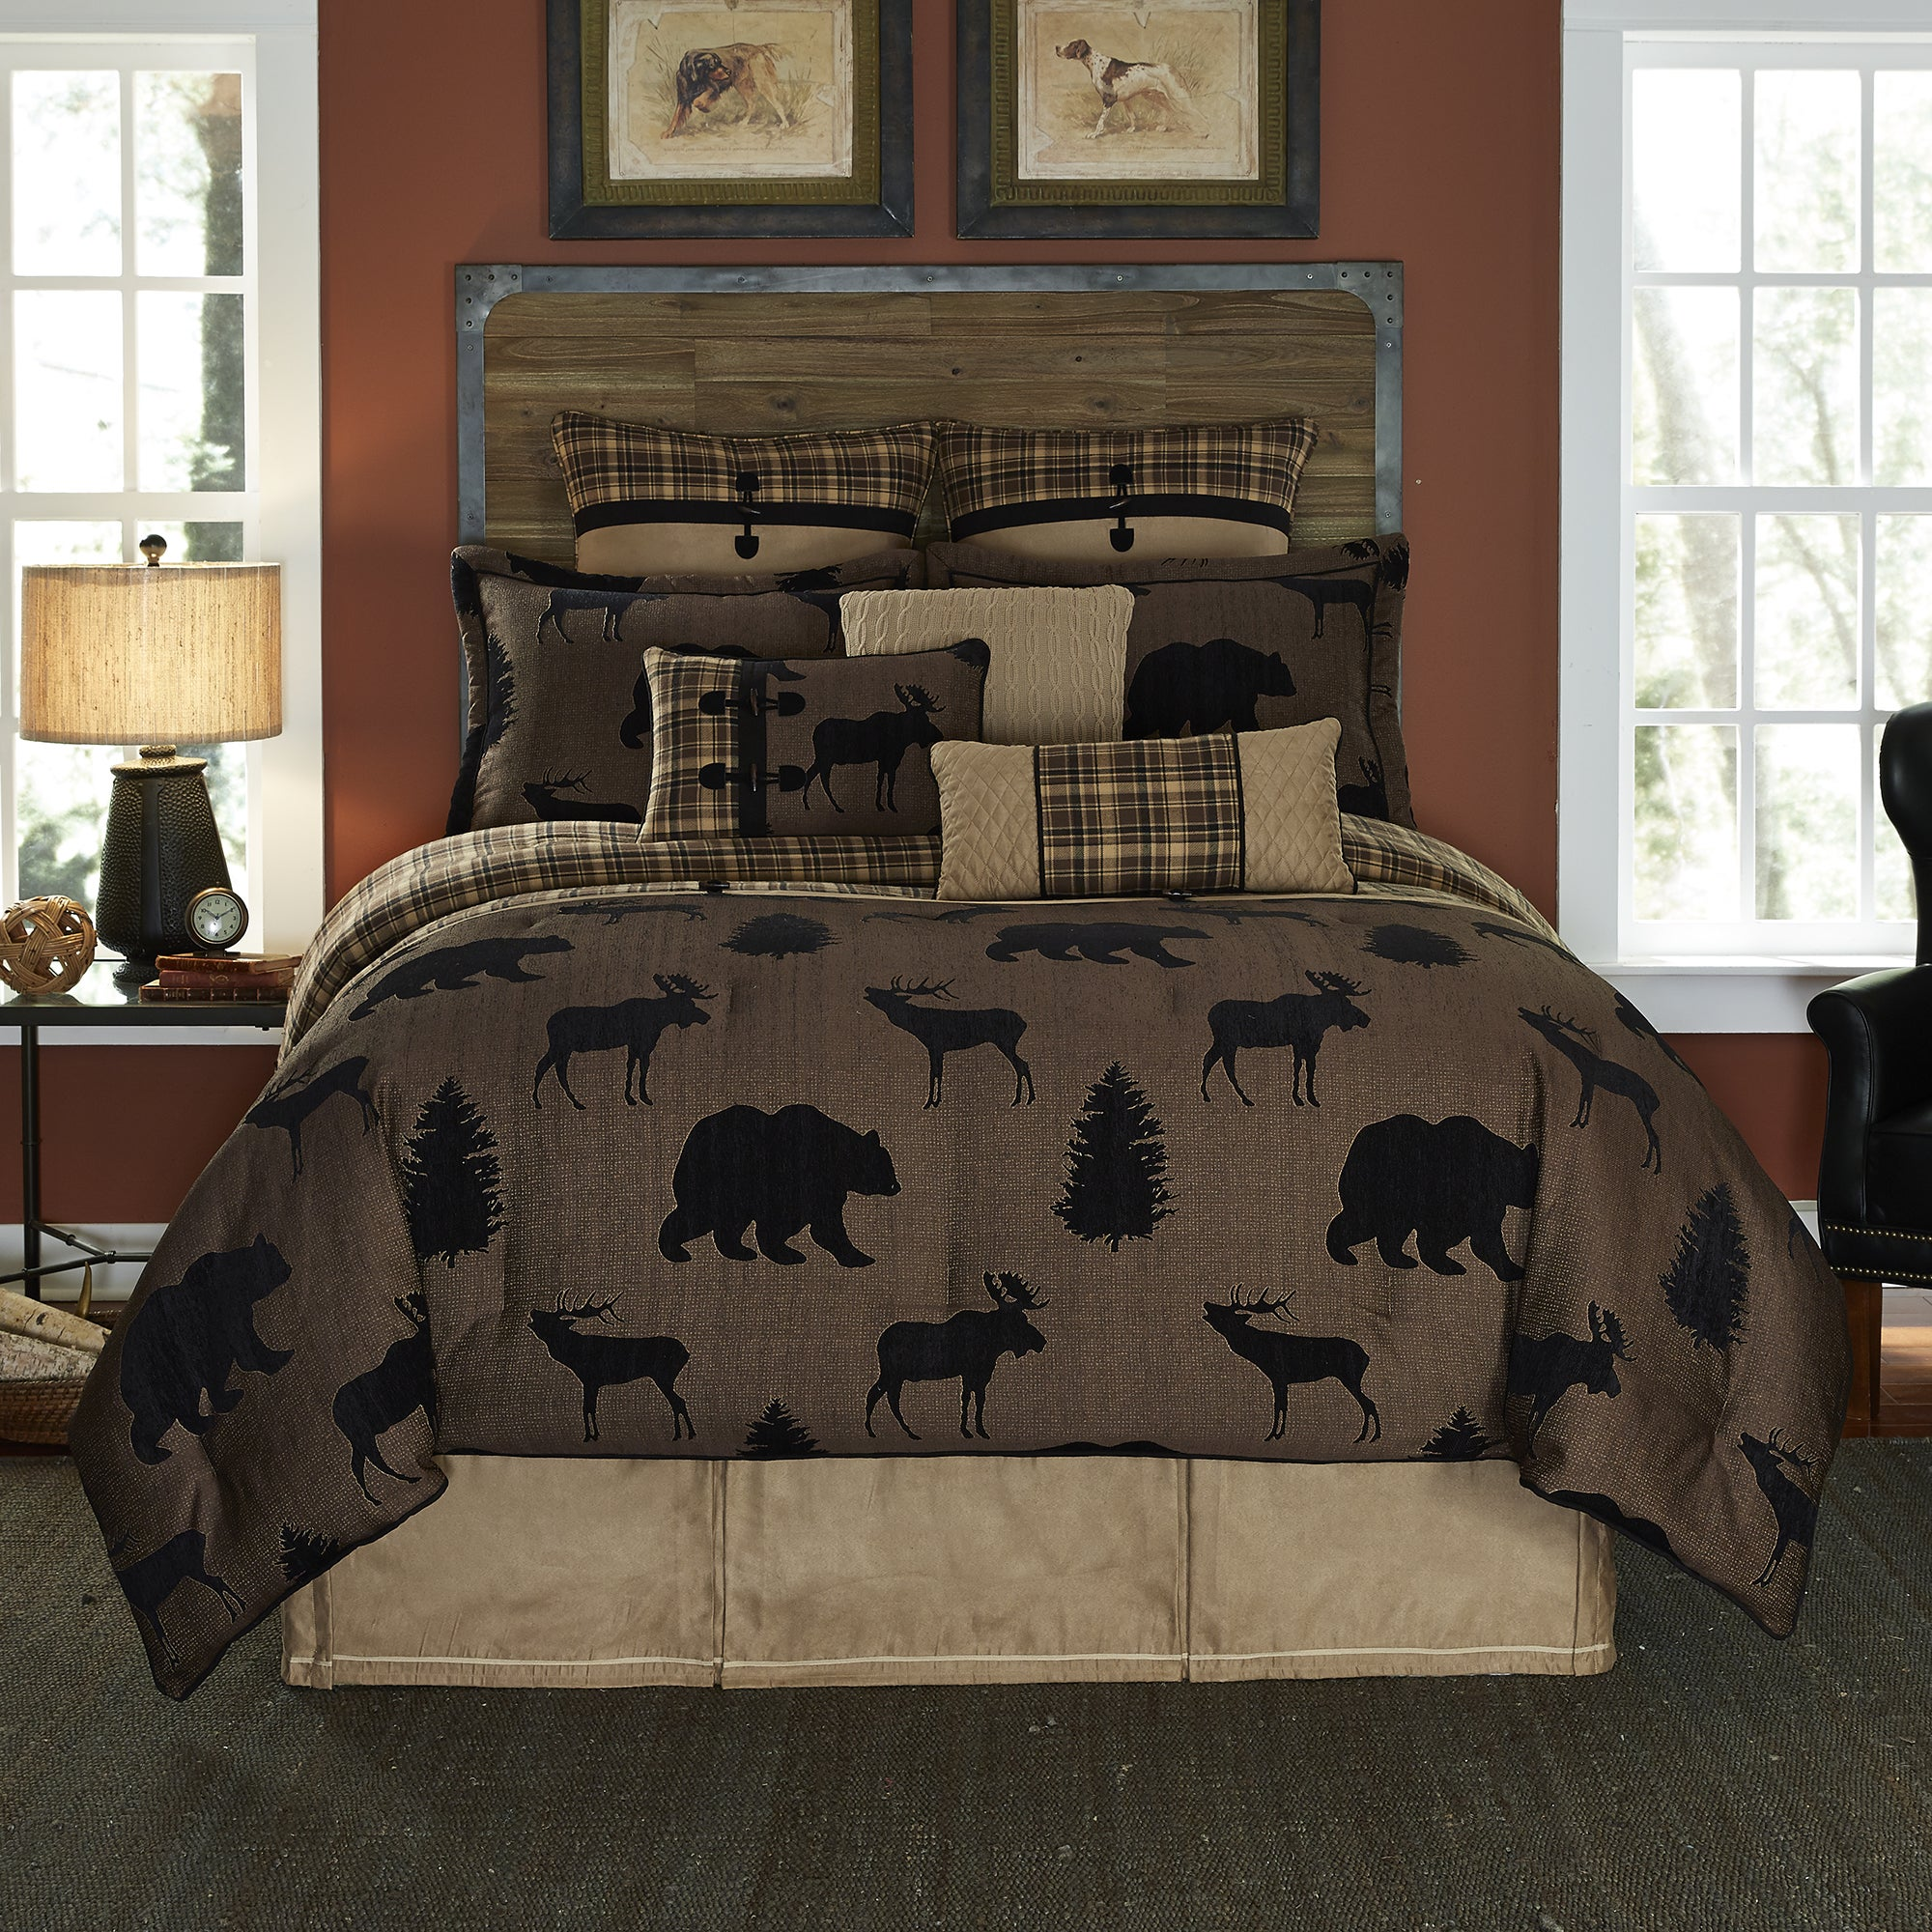 huts style decorate bedding lodge touch cookwithalocal cabin class home image cabins of inside comforters rustic